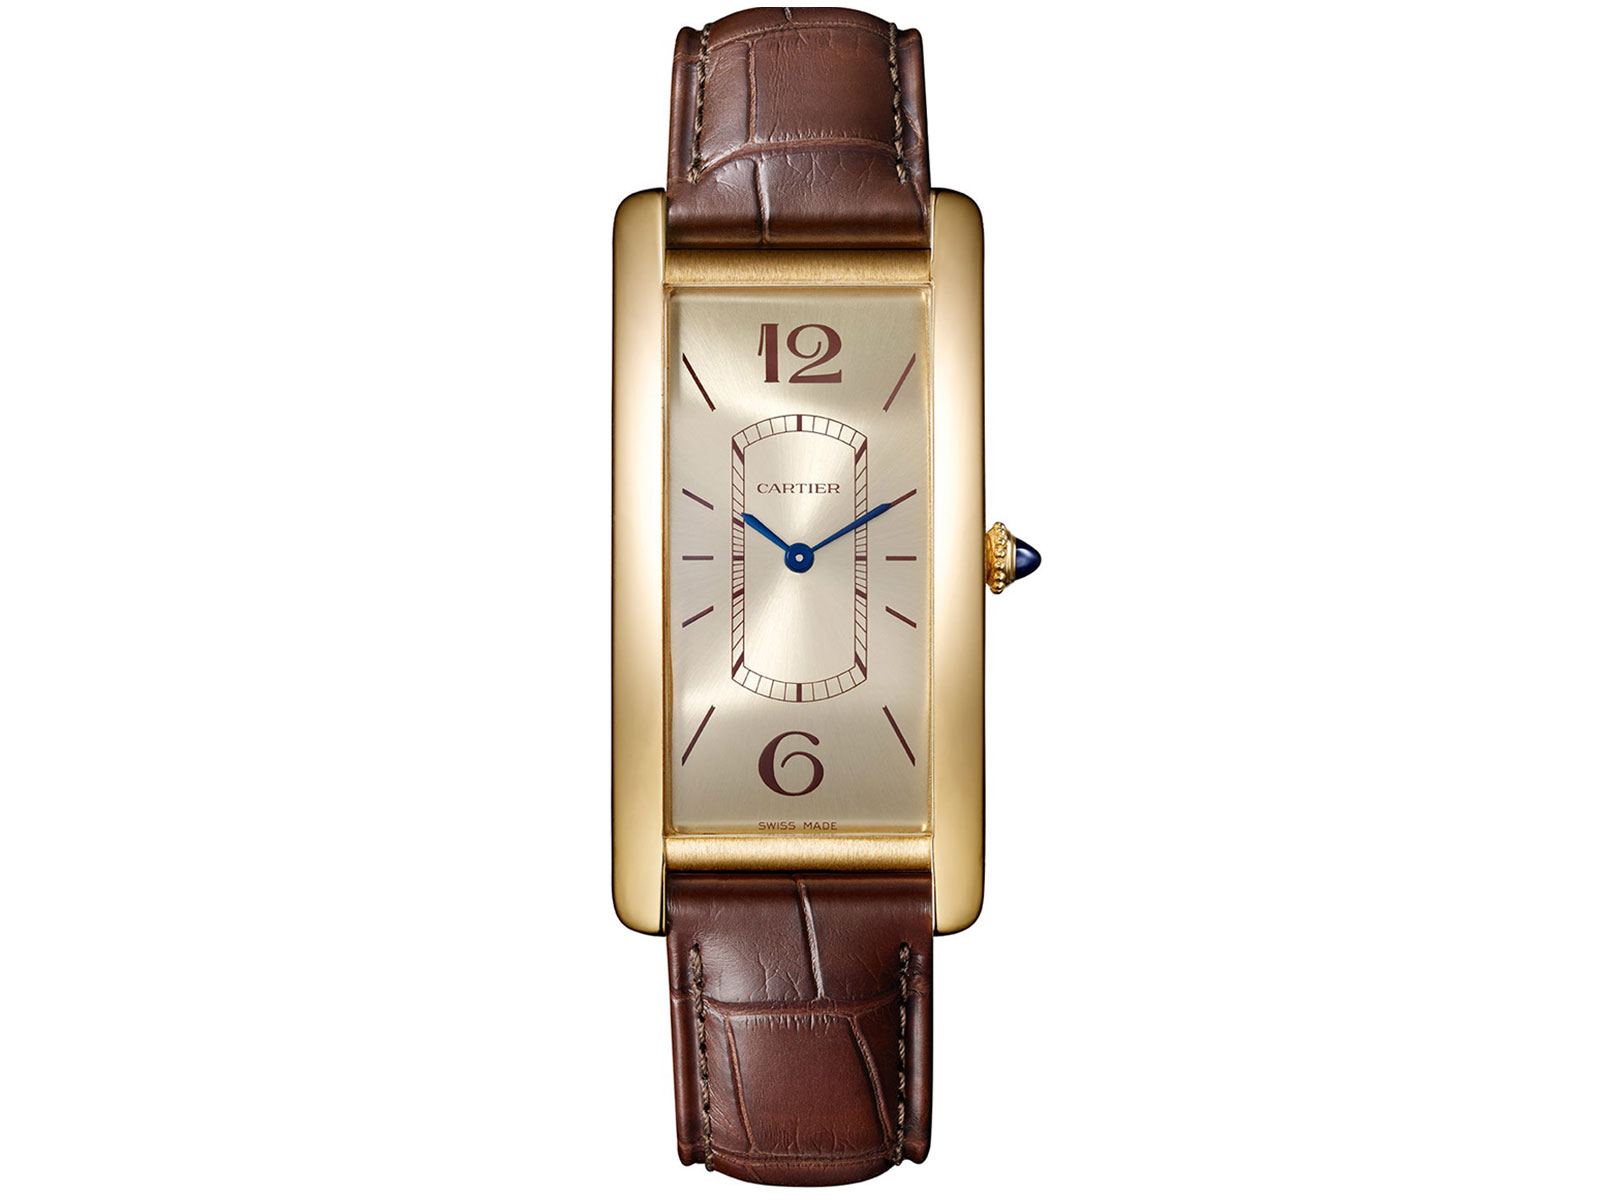 Cartier-Tank-Cintree-Sihh2018-Yellow-Gold.jpg